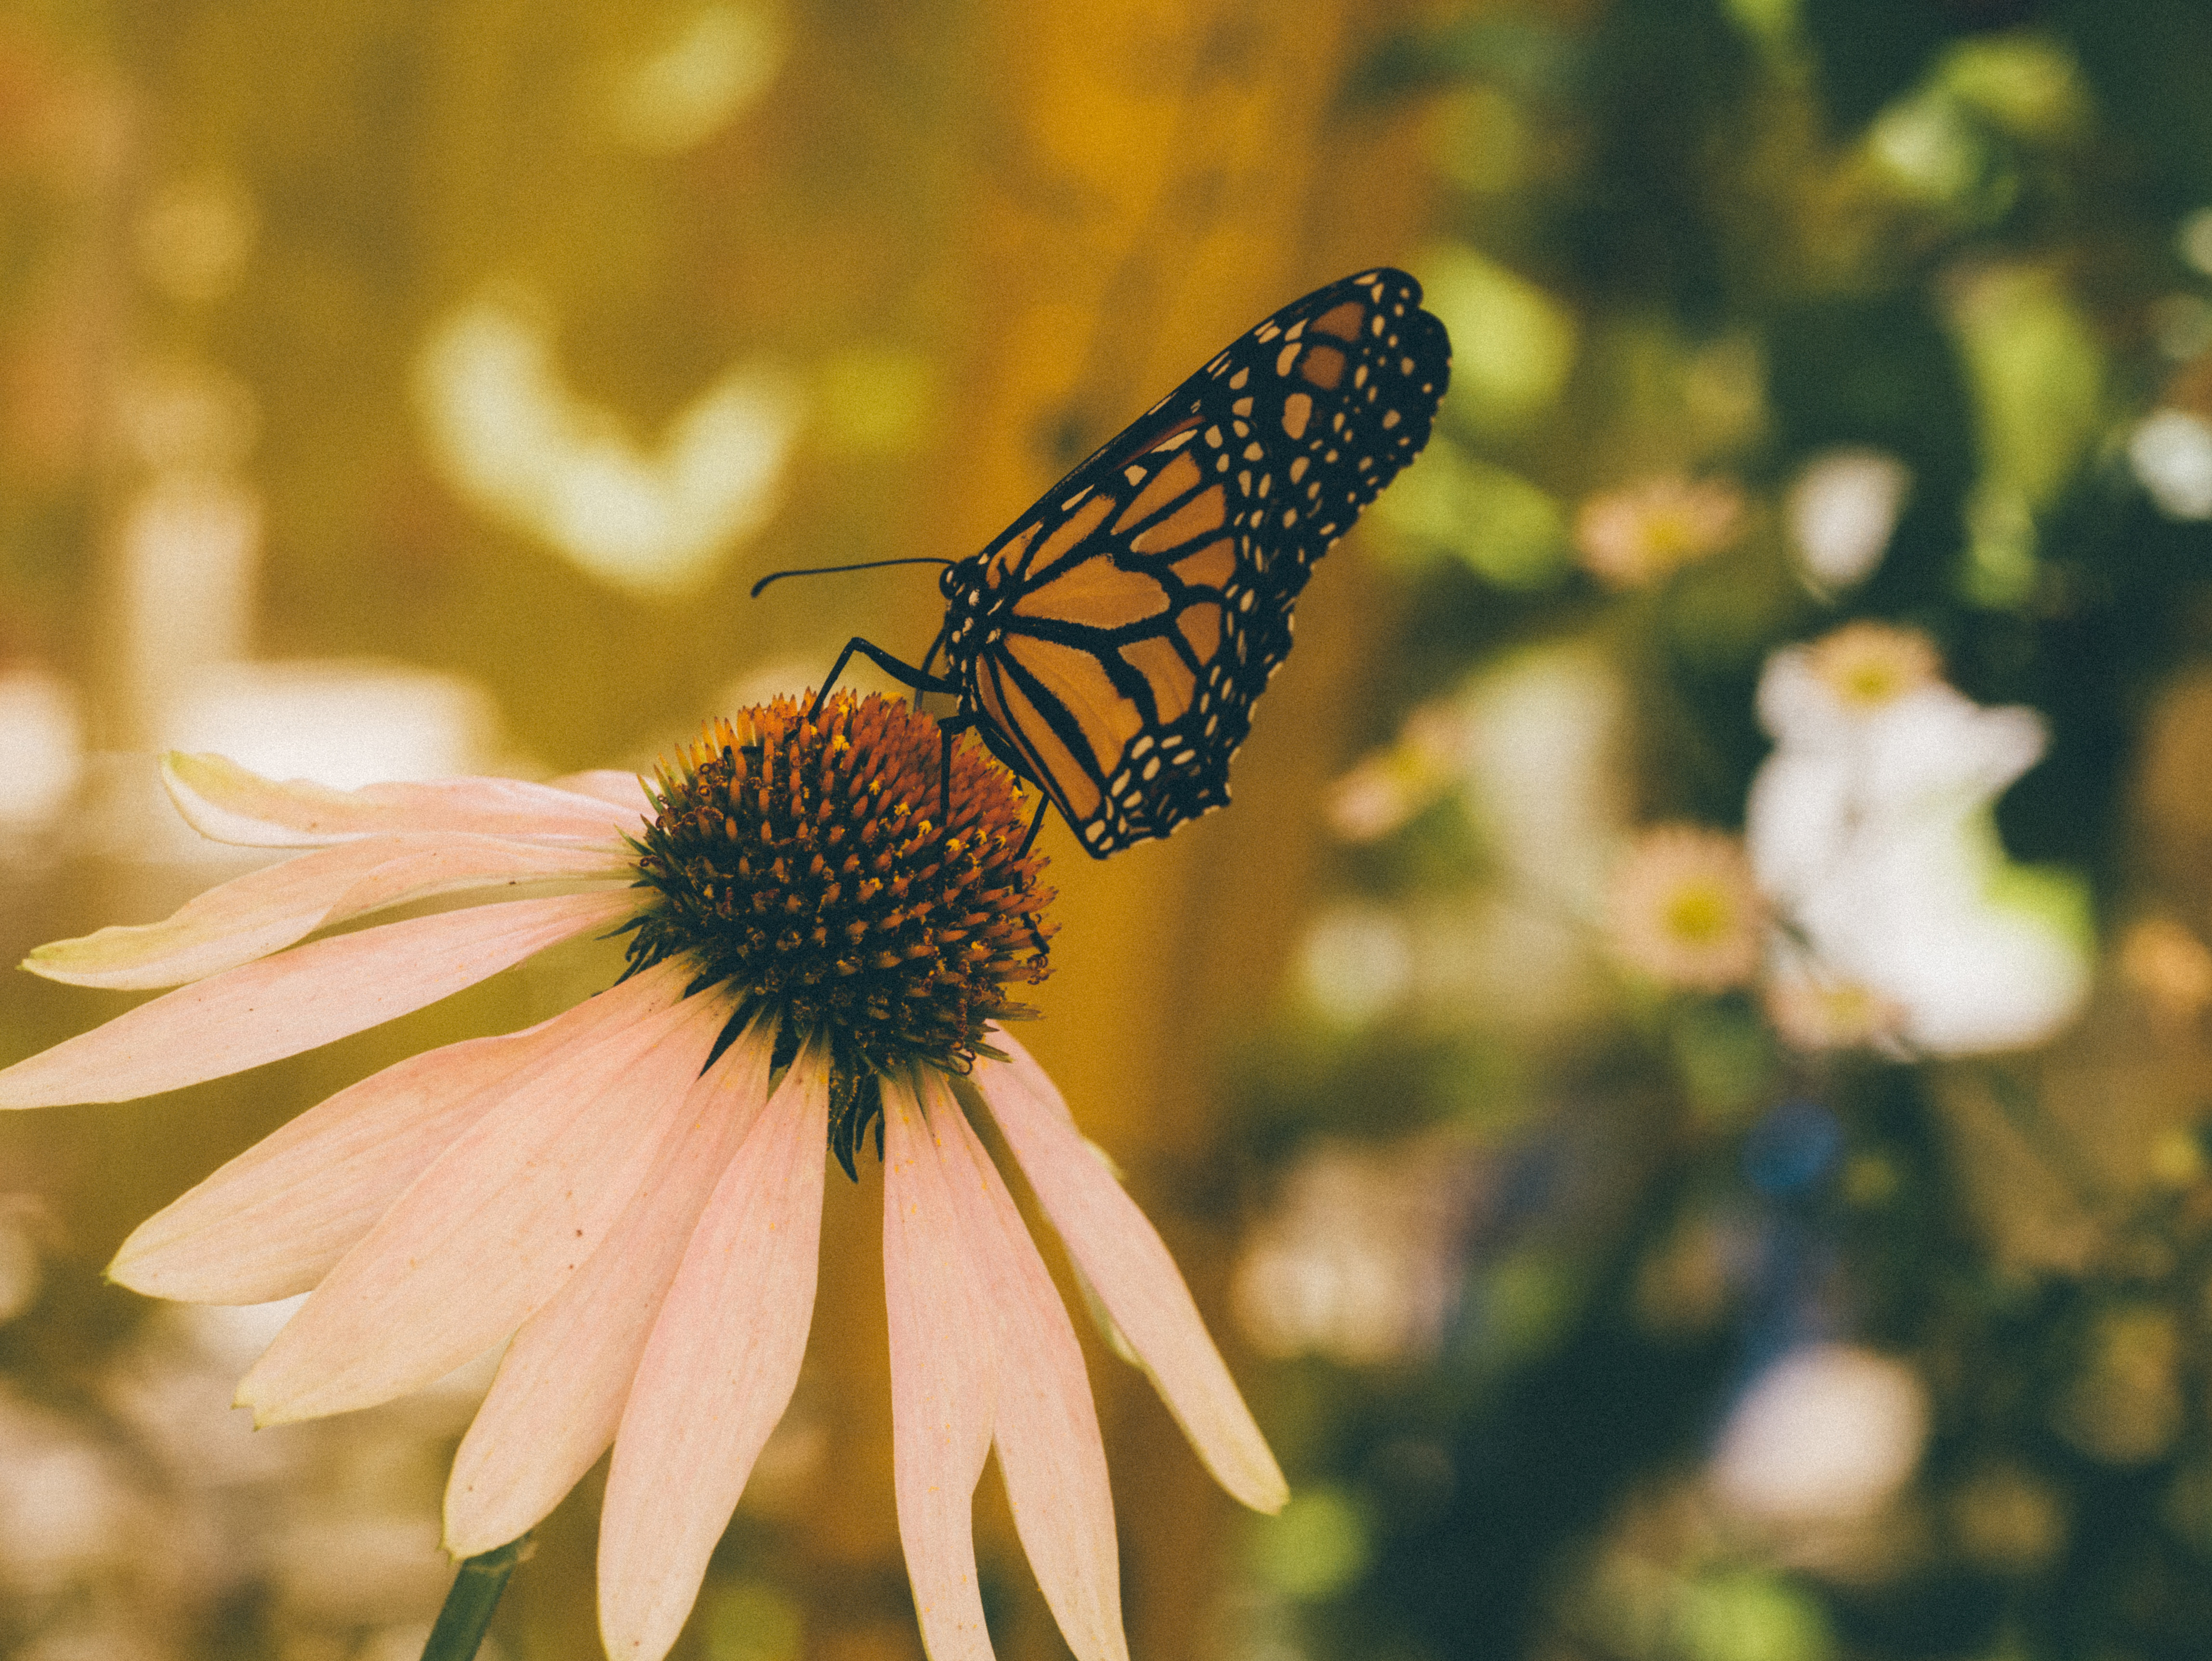 Butterfly on daisy, insect, butterfly, flowers, butterfly, insect, flowers, nature, garden